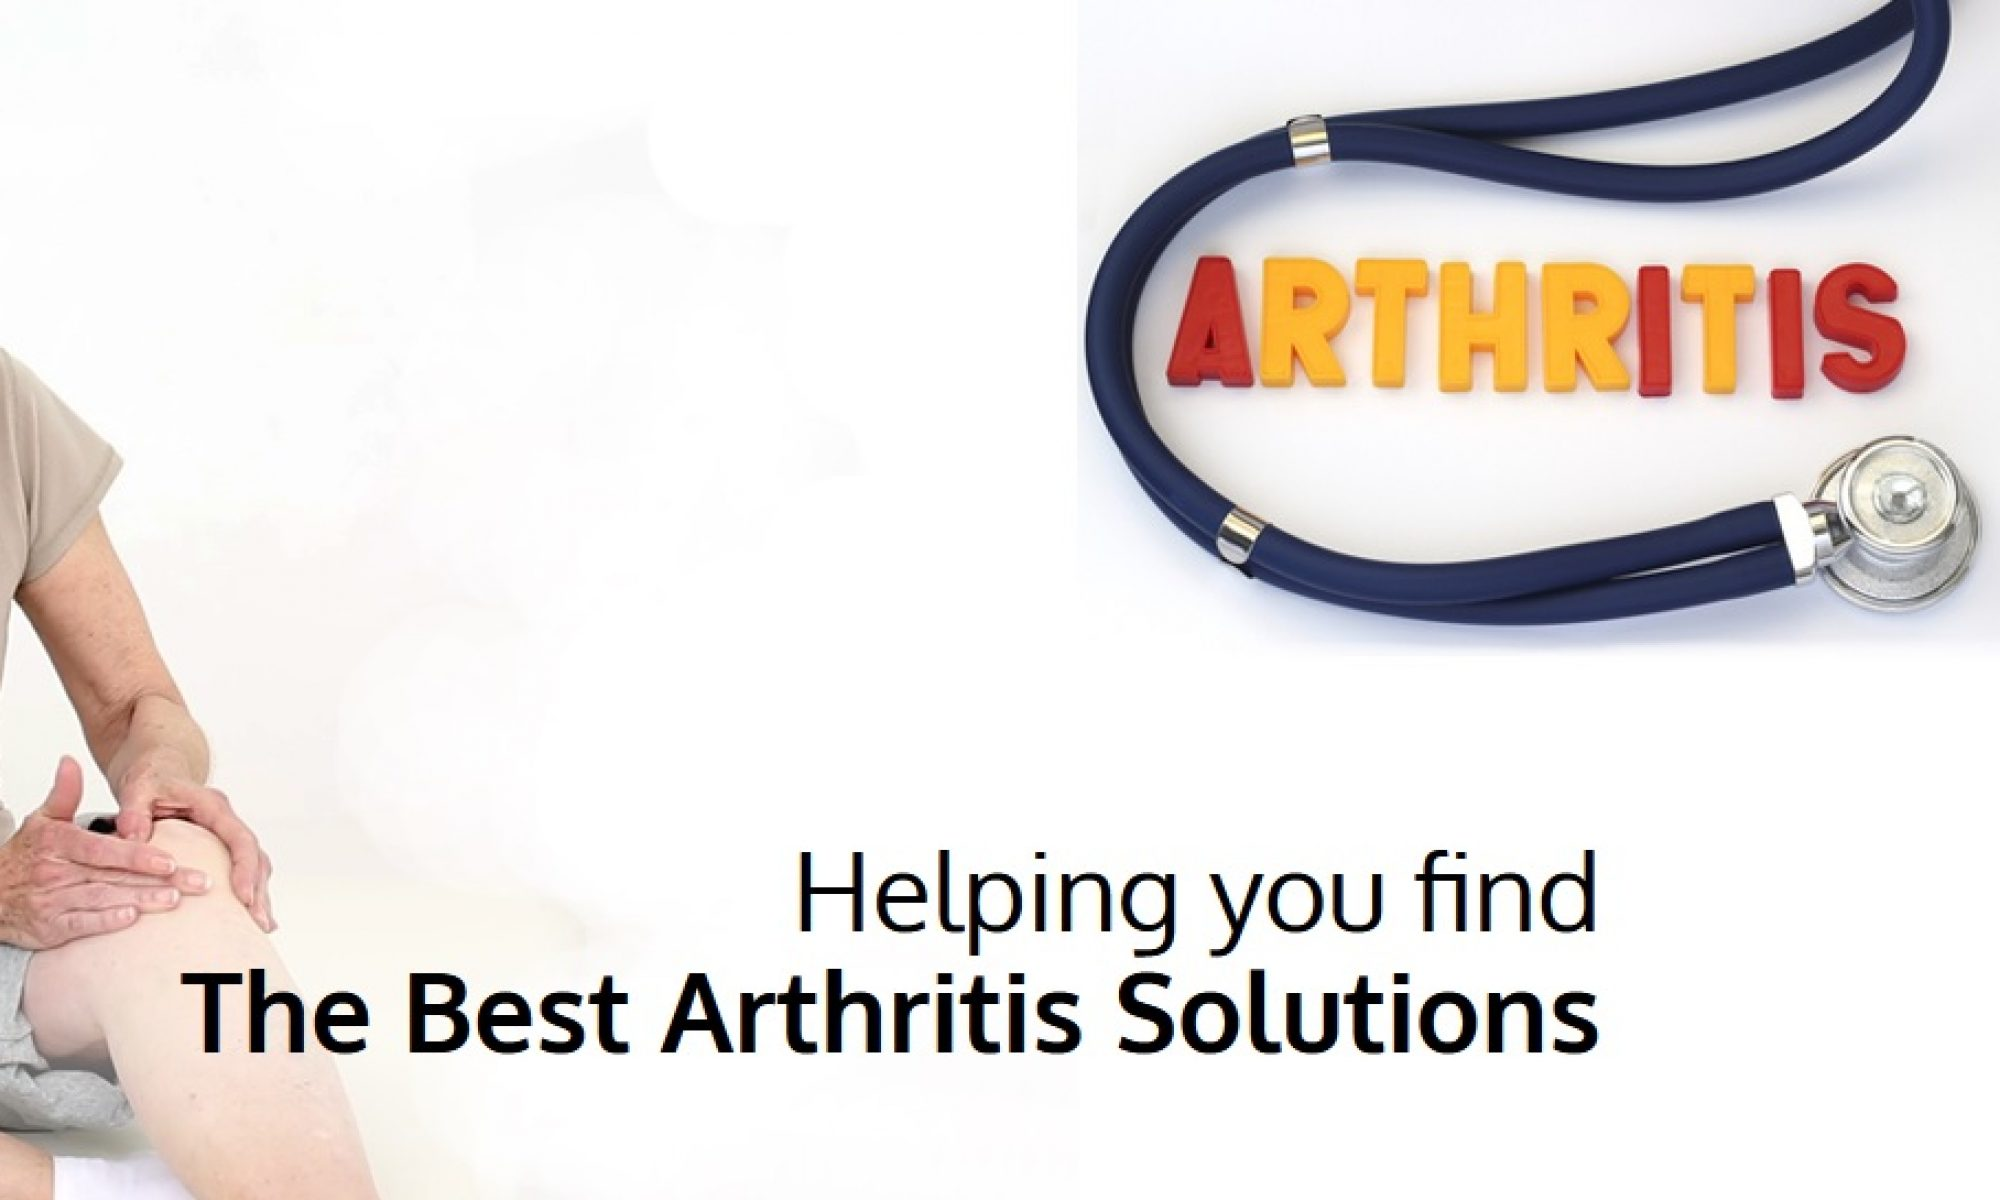 Knee Arthritis Solutions In Singapore